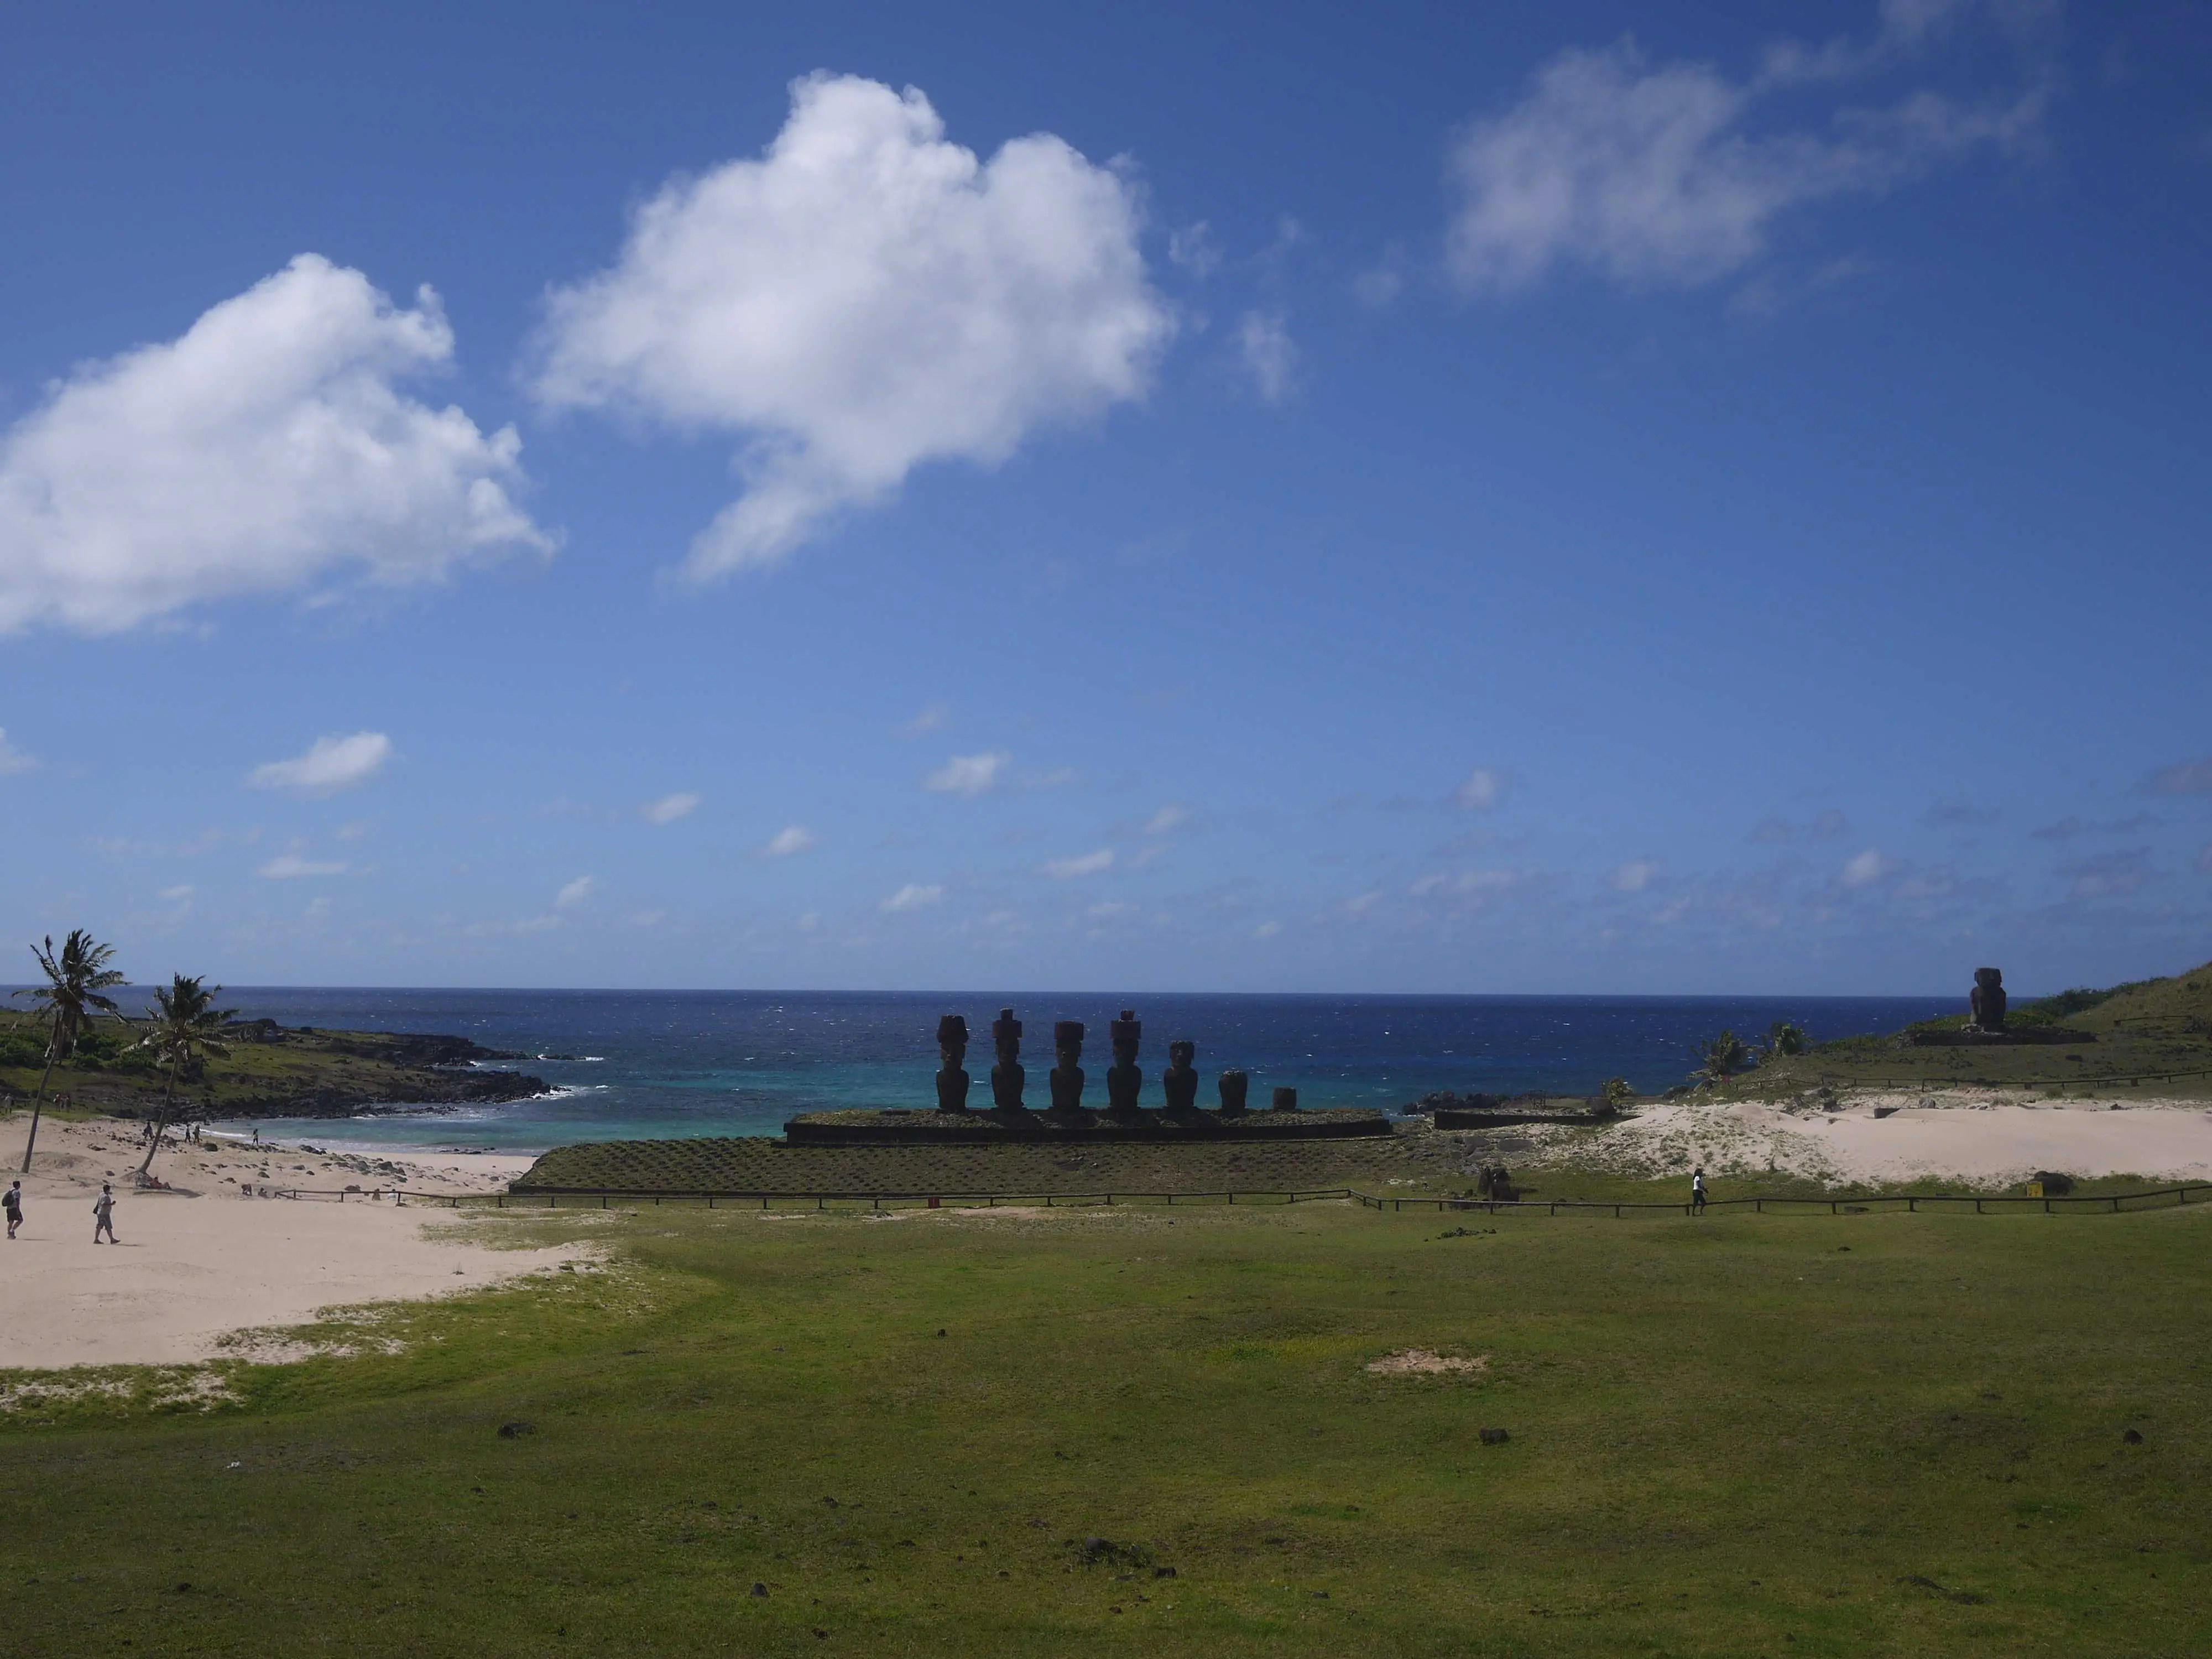 Ancient monolithic Moai statues watch over swimmers at the picturesque Anakena Beach in Easter Island, Chile.